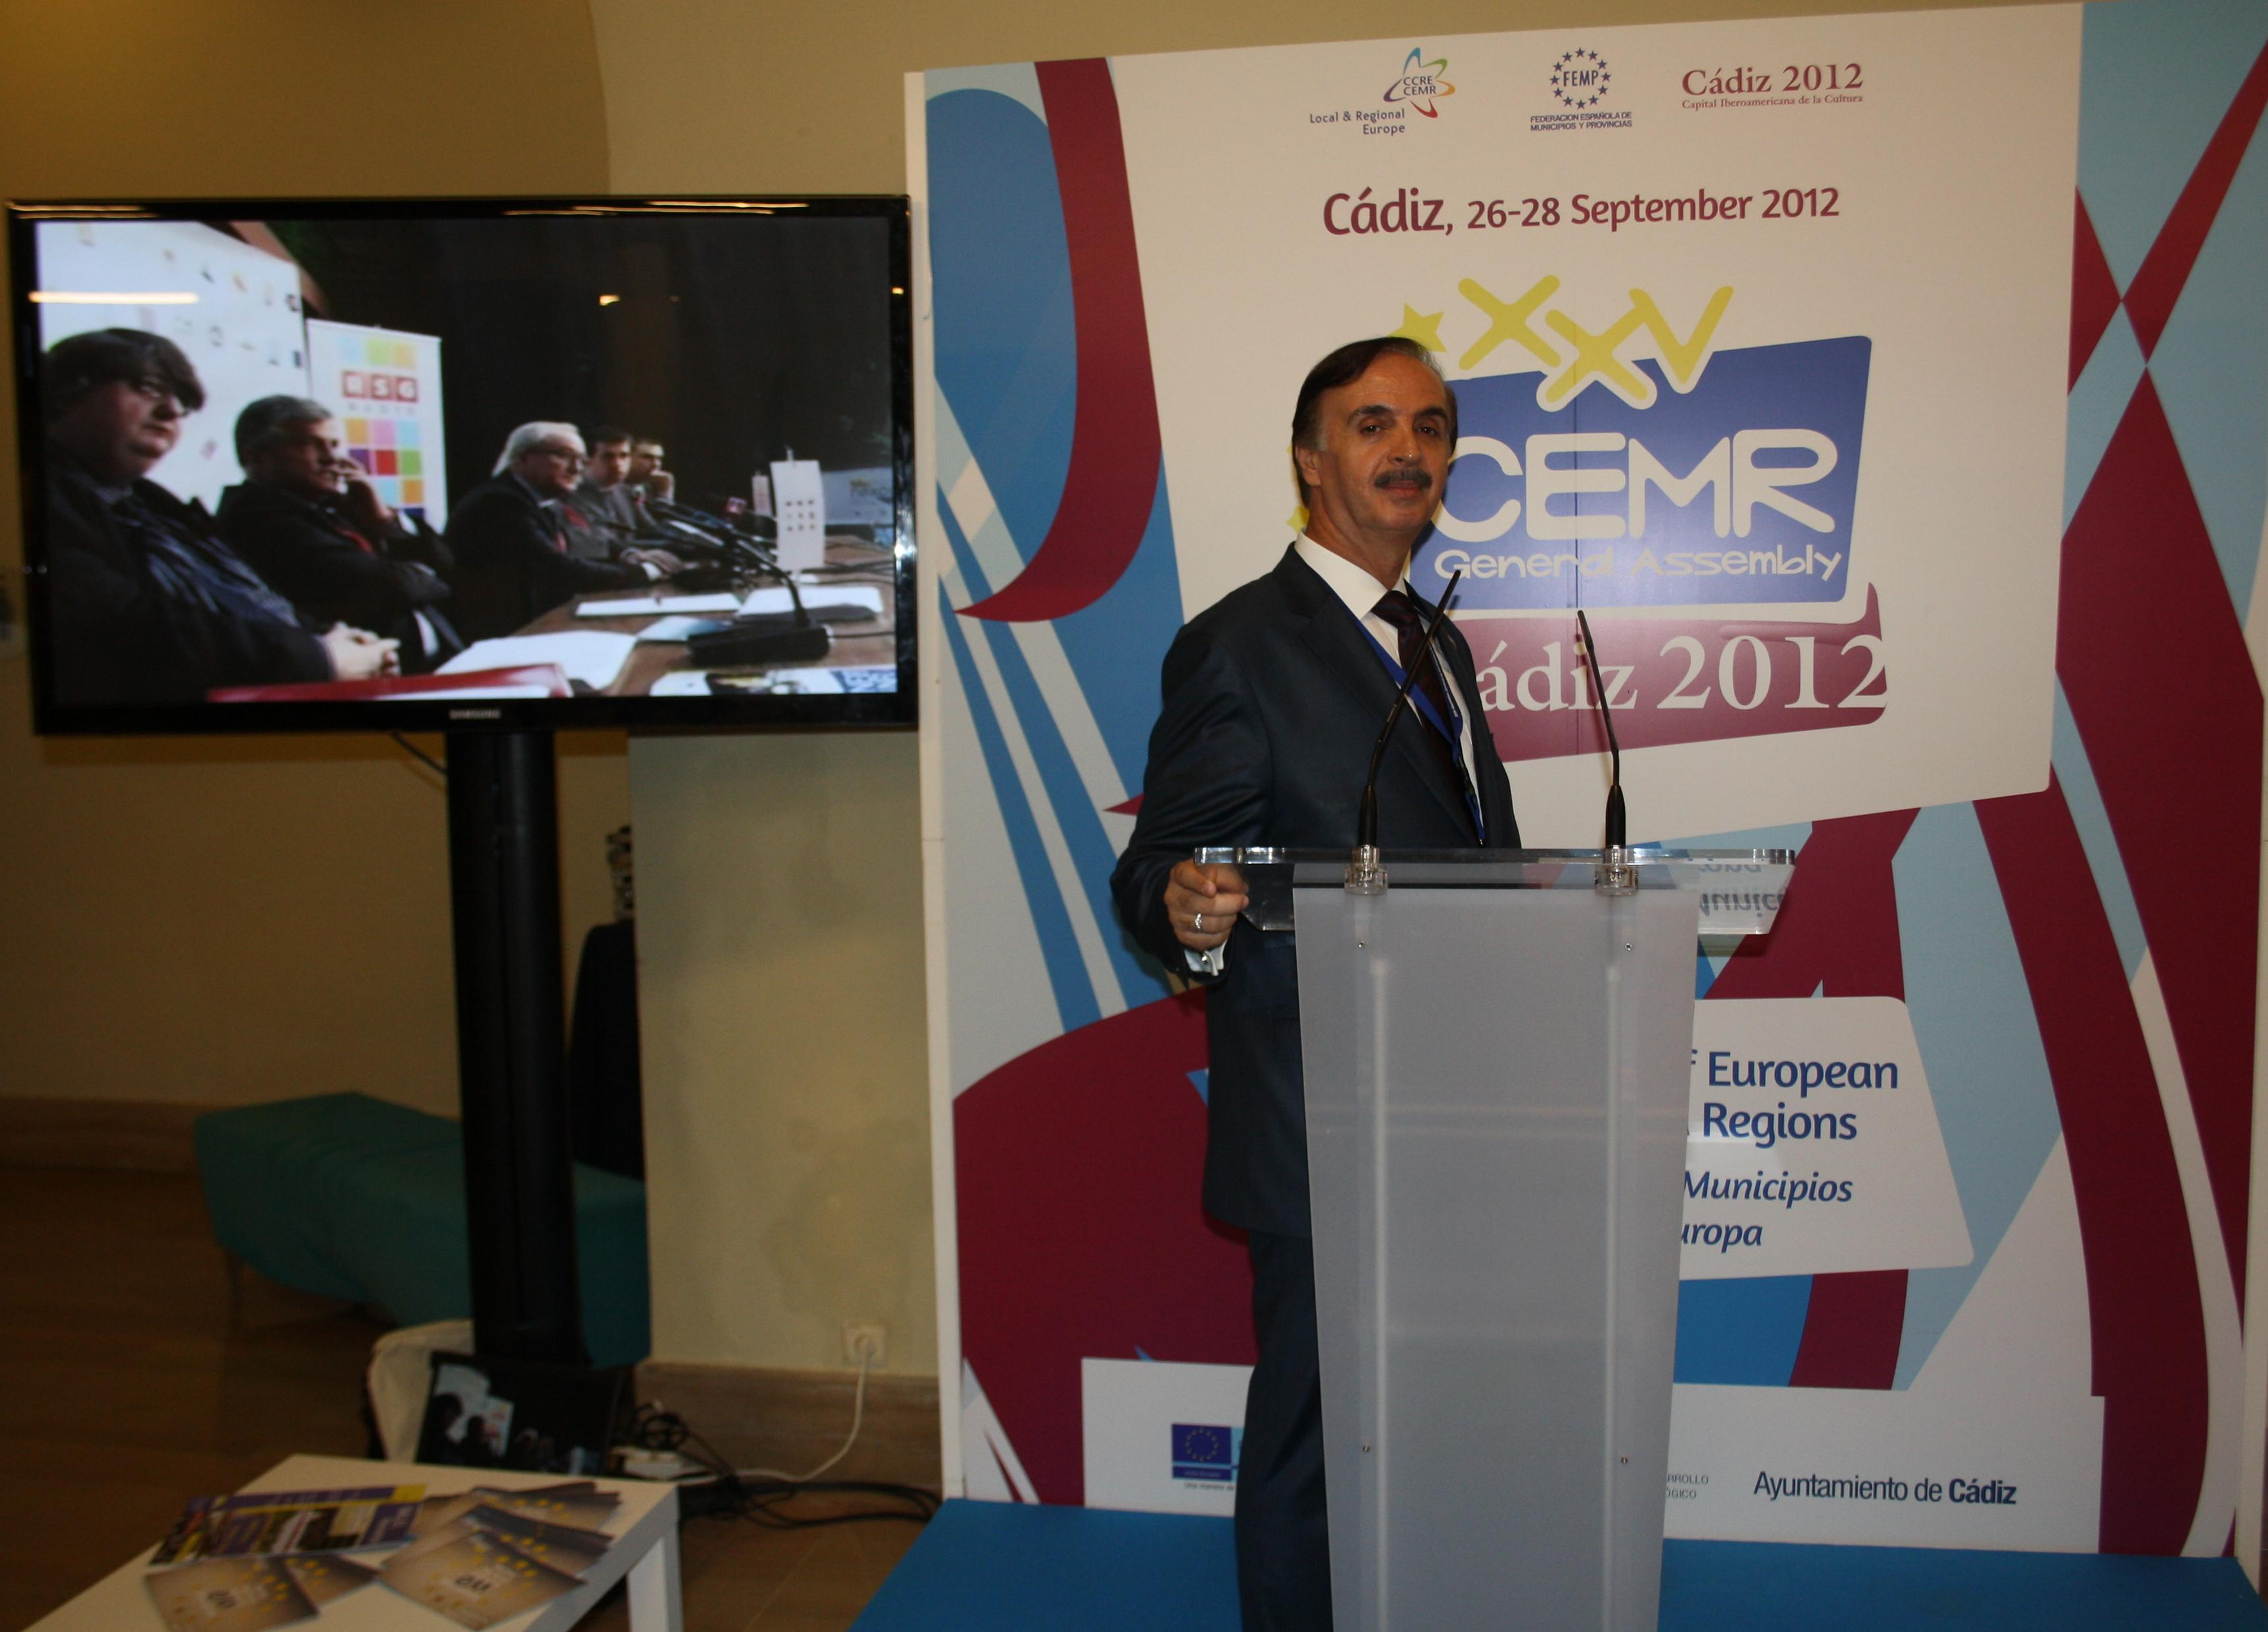 NALAS Presents Its Work on the 25th General Assembly of CEMR